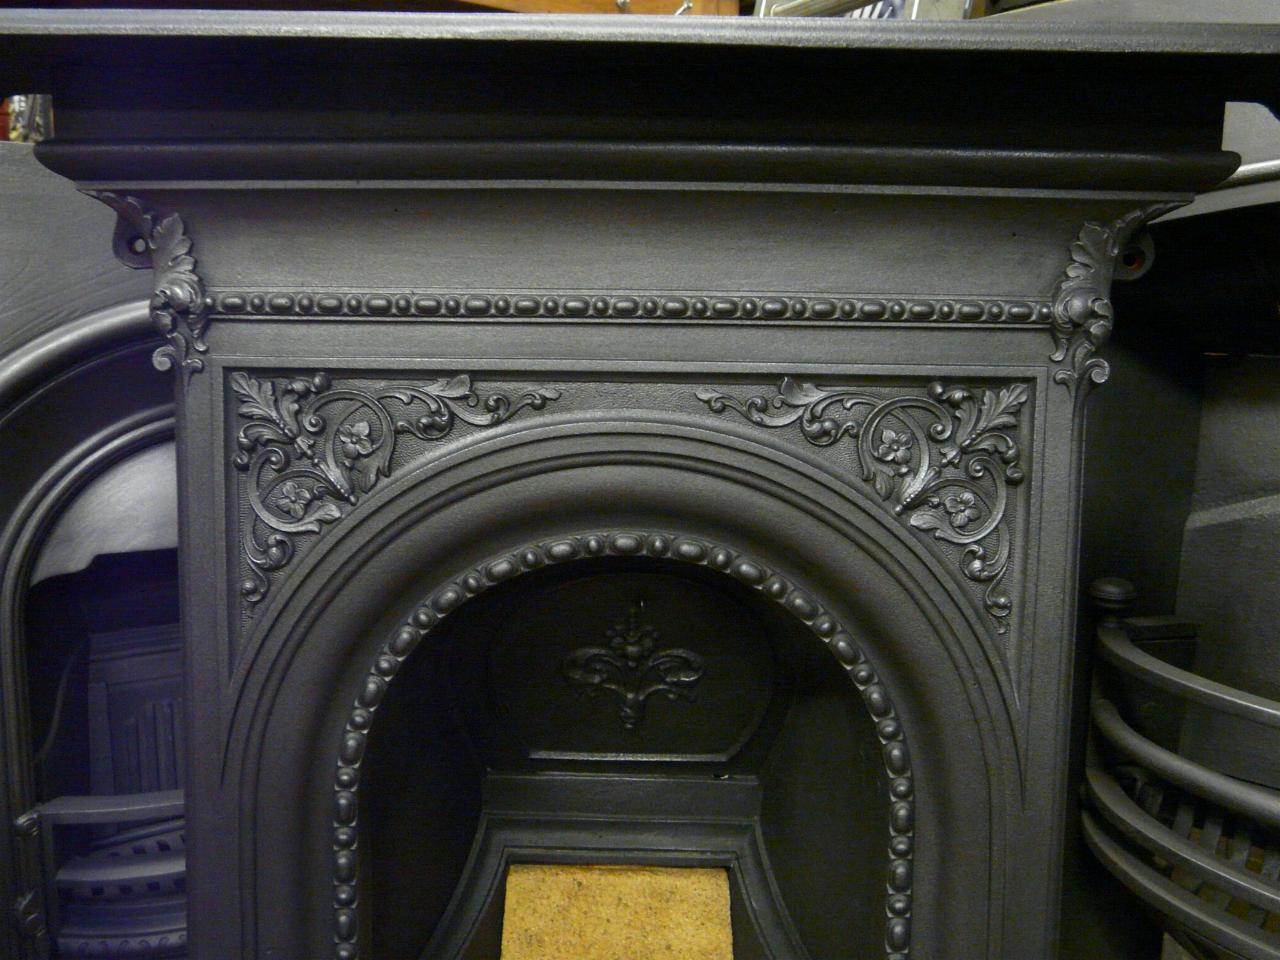 Victorian Bedroom Fireplace - 038B - Old Fireplaces